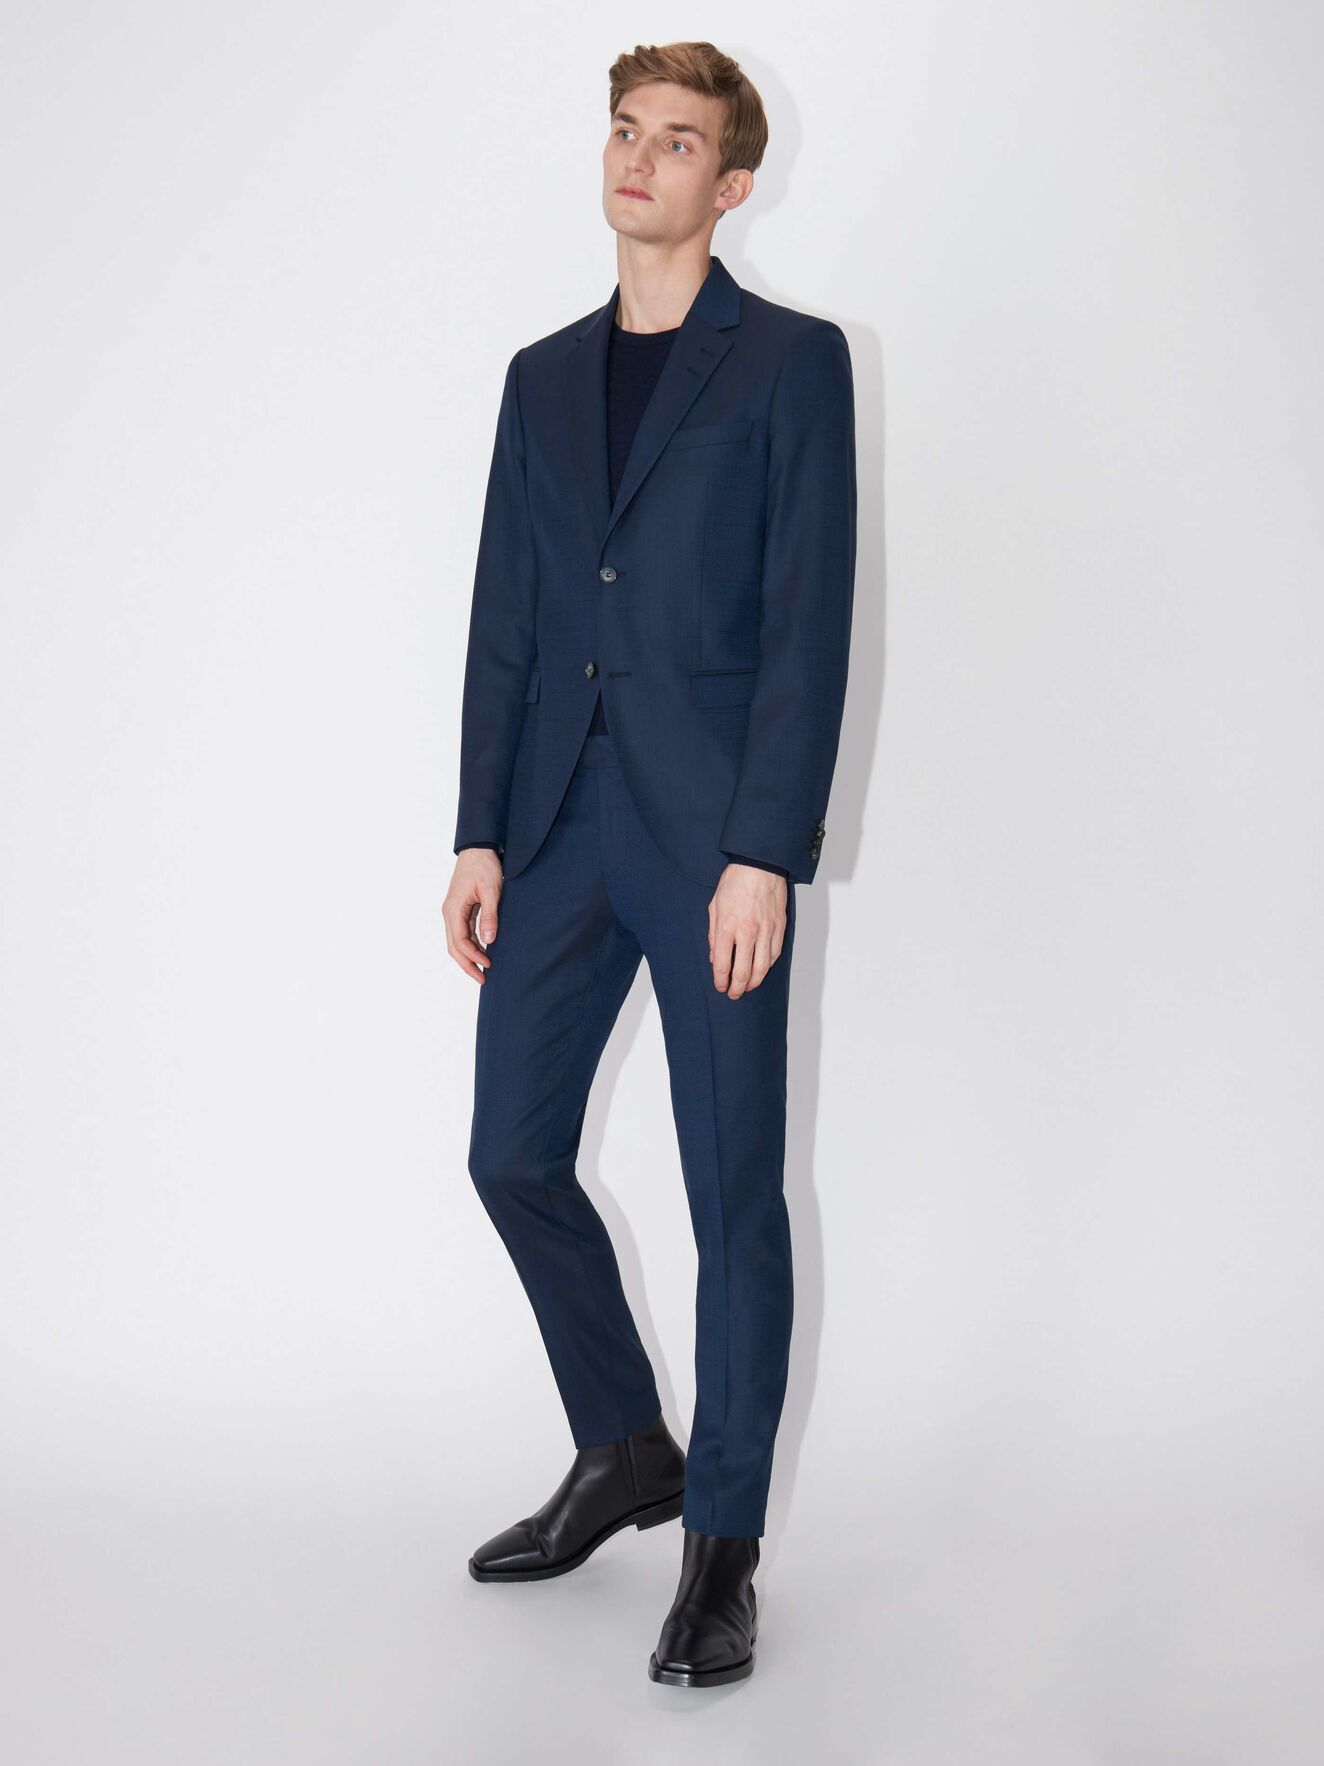 Jamonte blazer in Country Blue from Tiger of Sweden